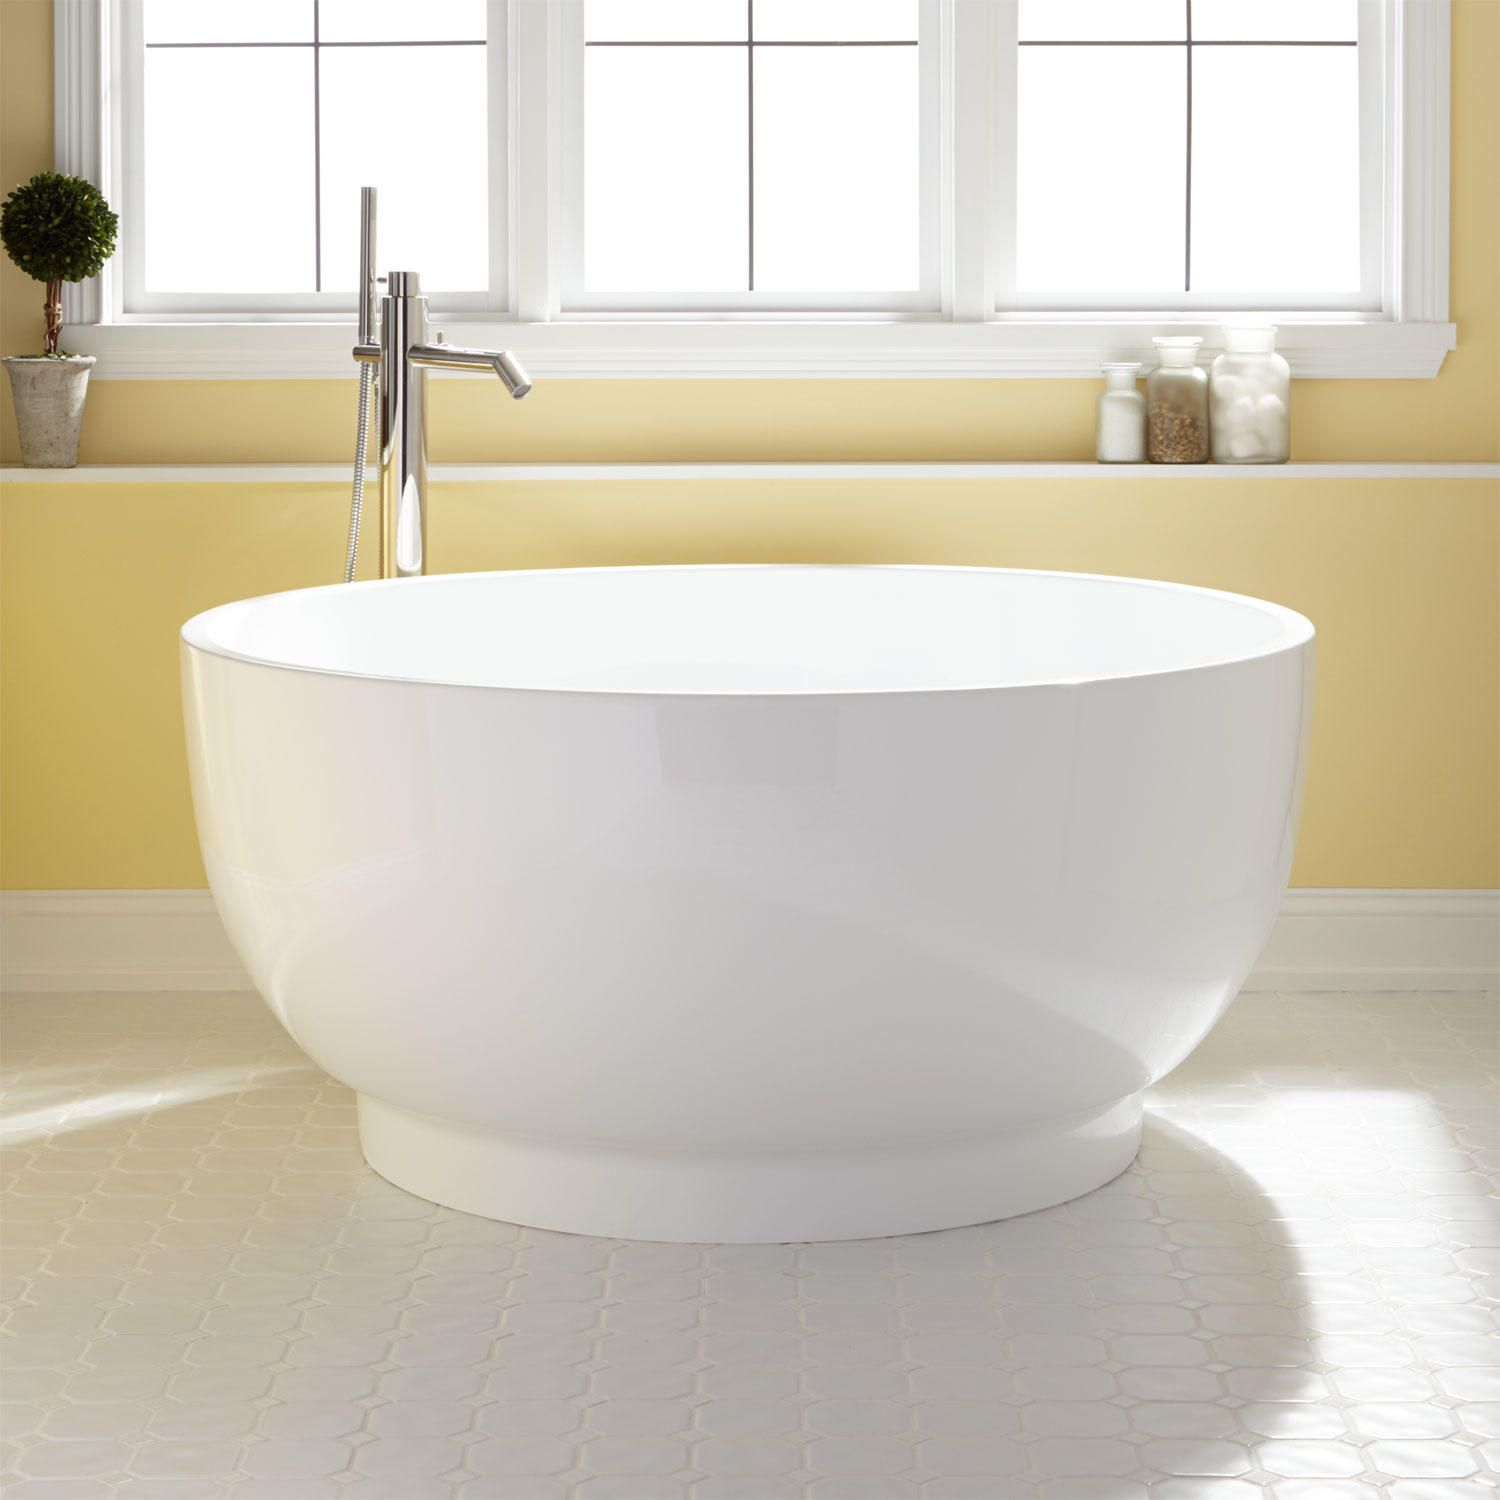 41 siglo round japanese soaking tub